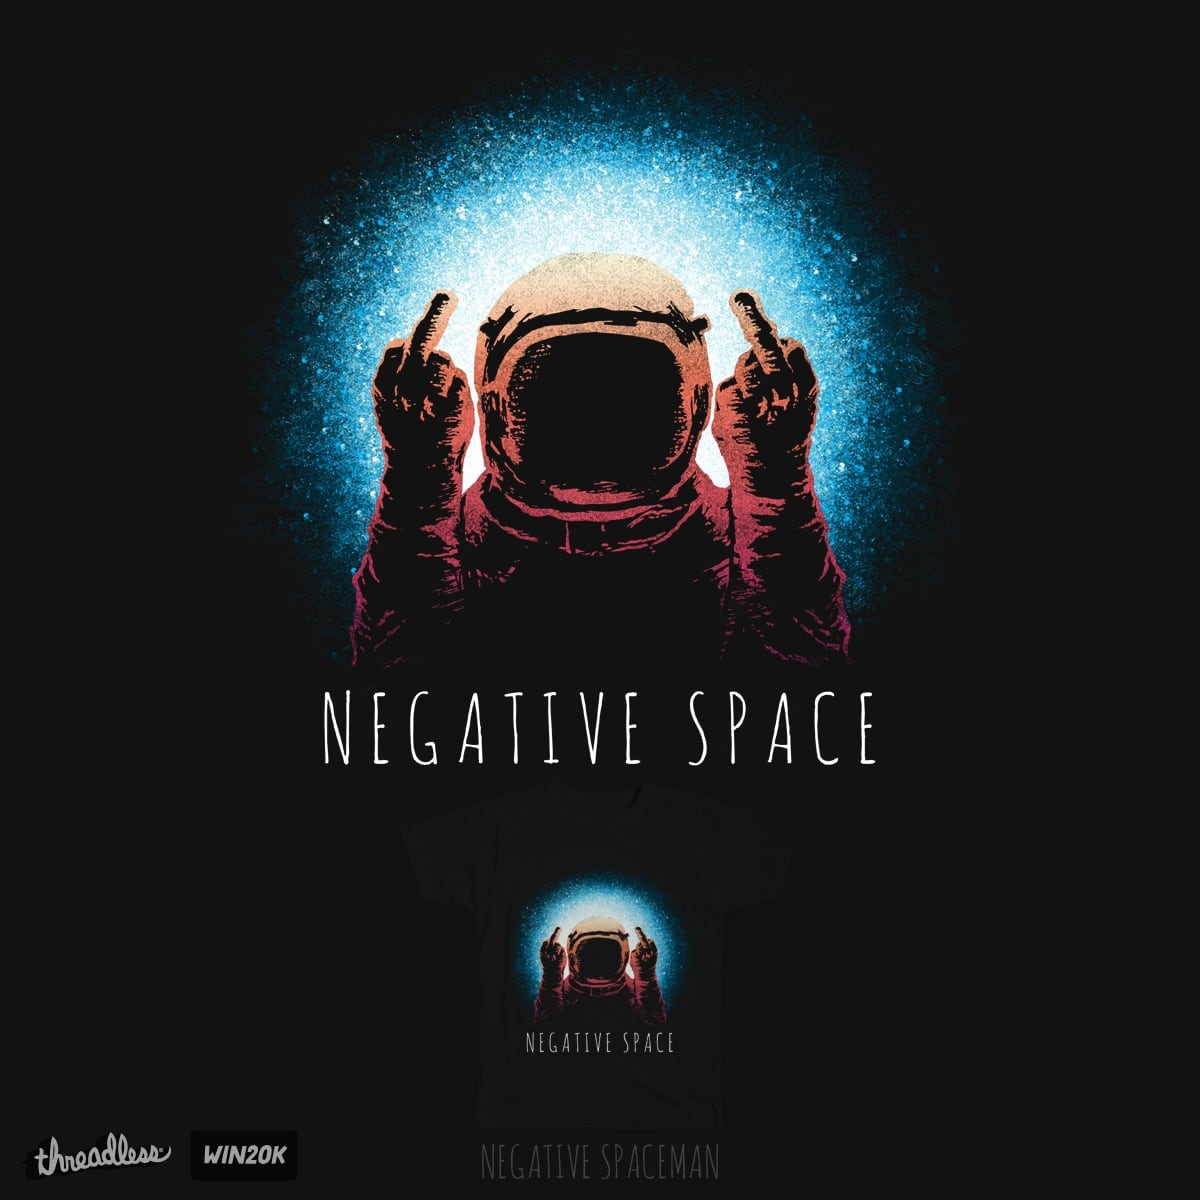 Negative Spaceman, a cool t-shirt by danielteres on Threadless